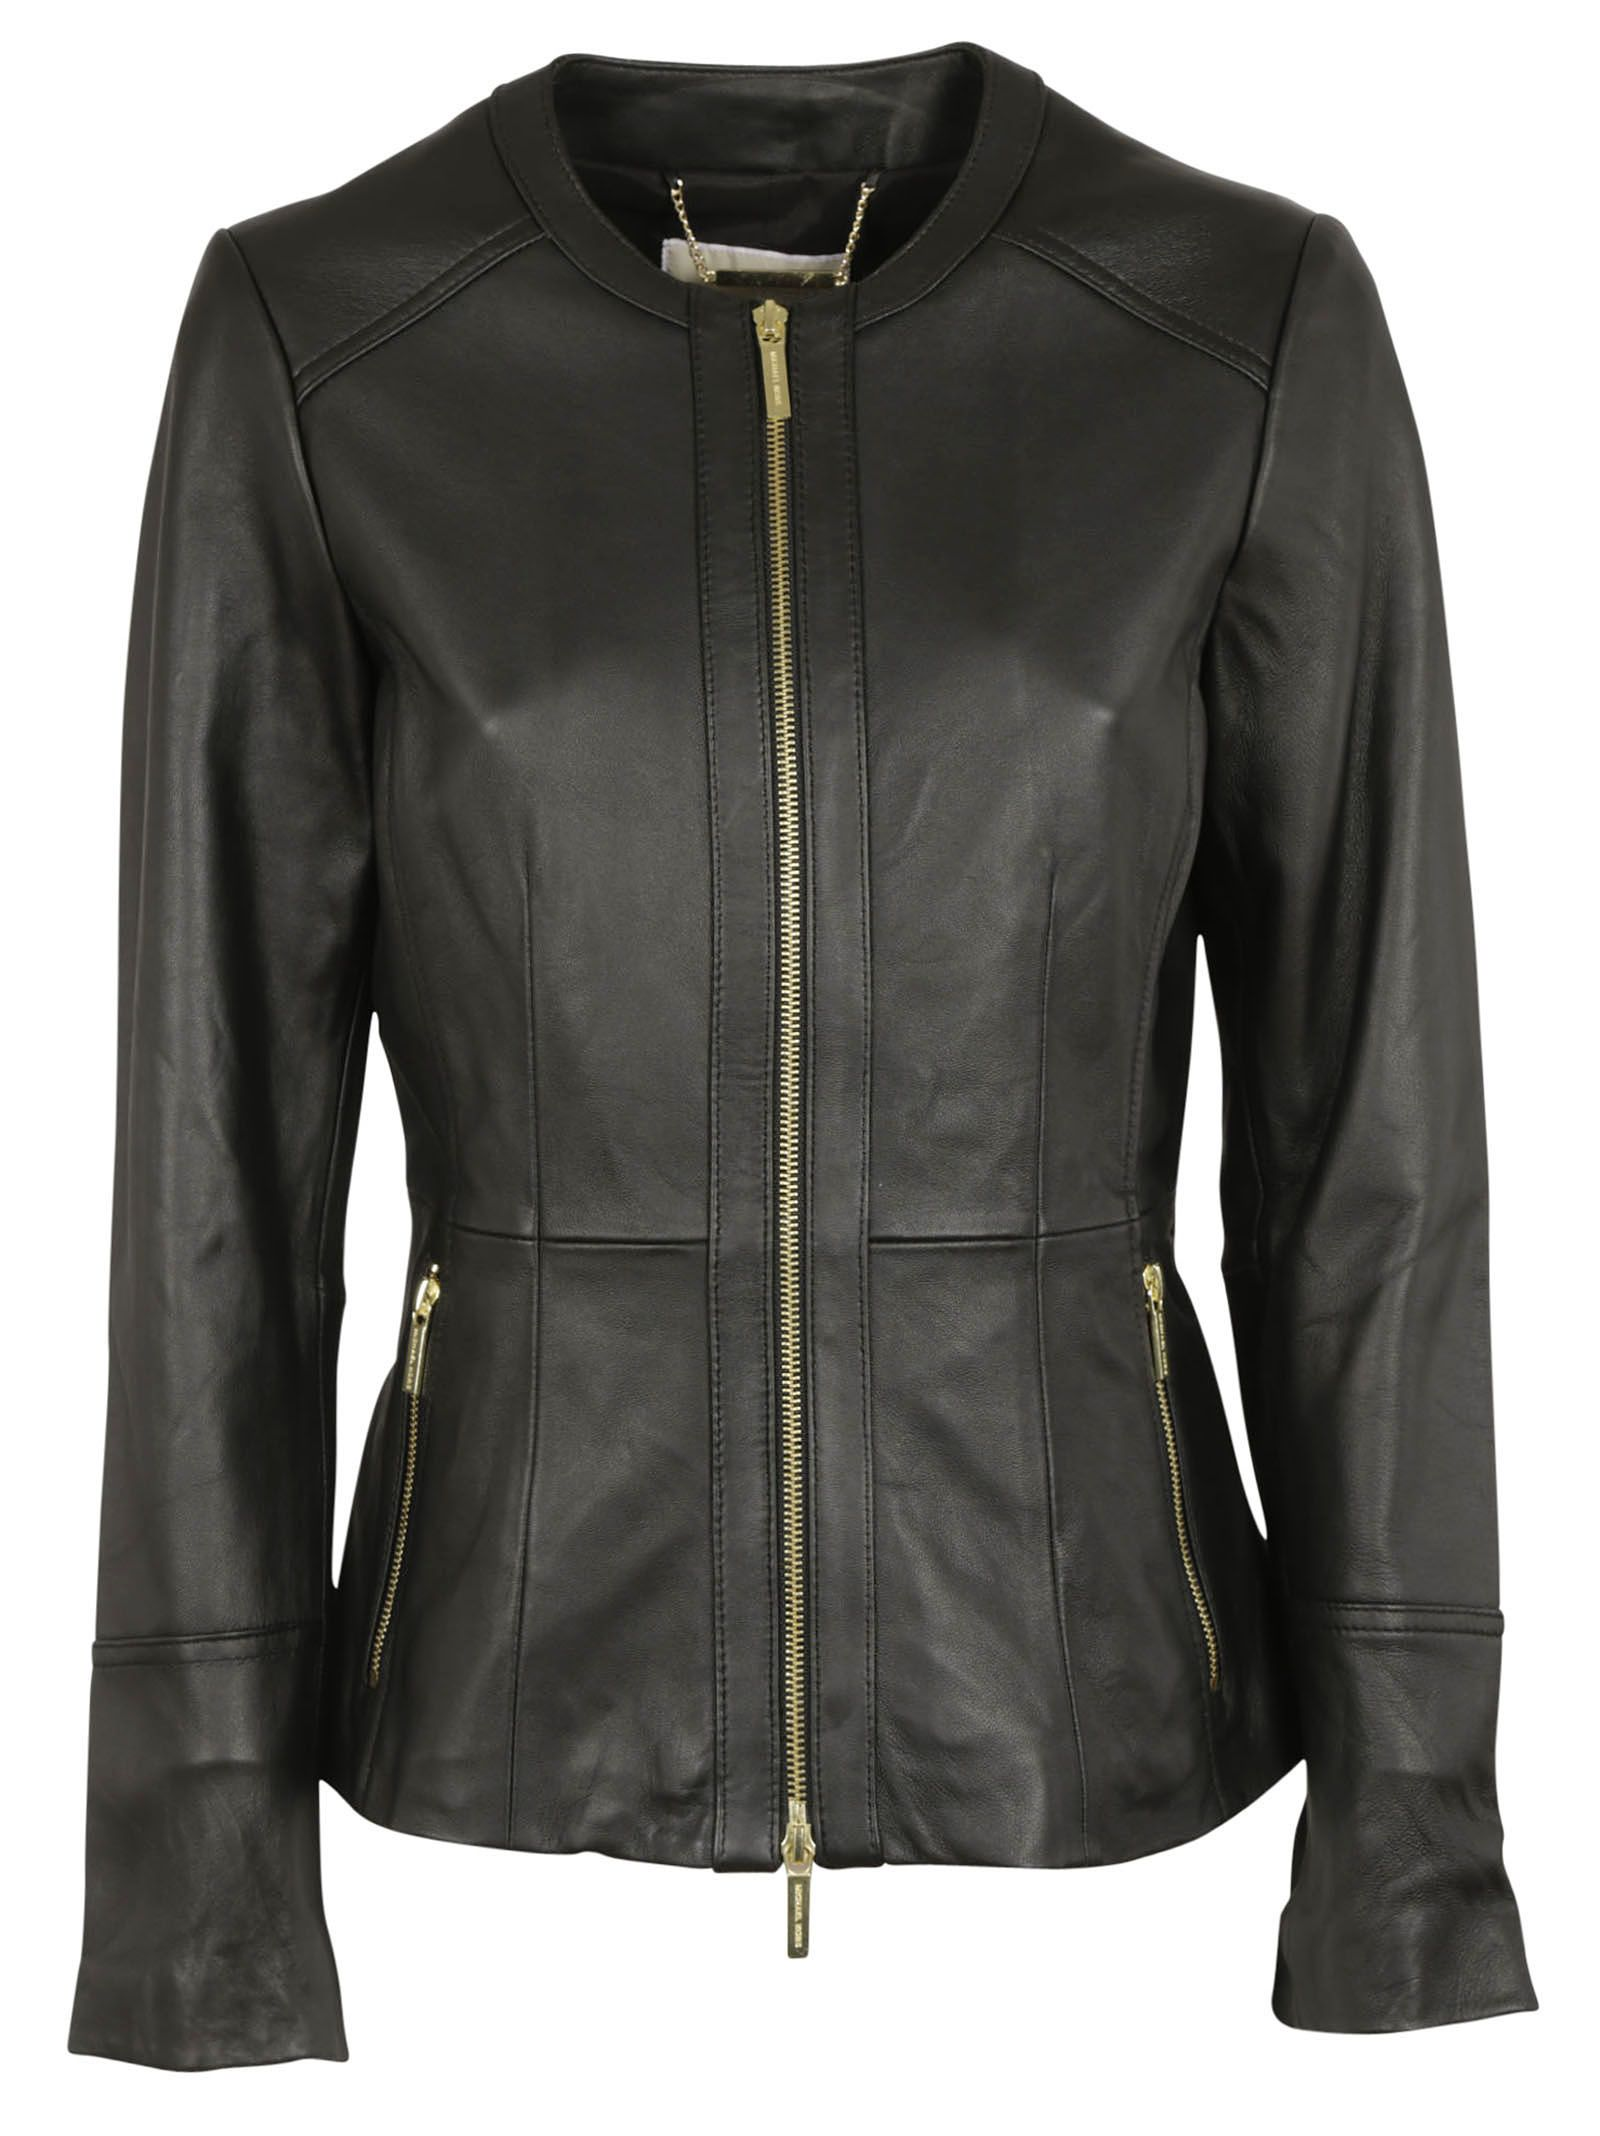 michael kors female 188971 black leather jacket